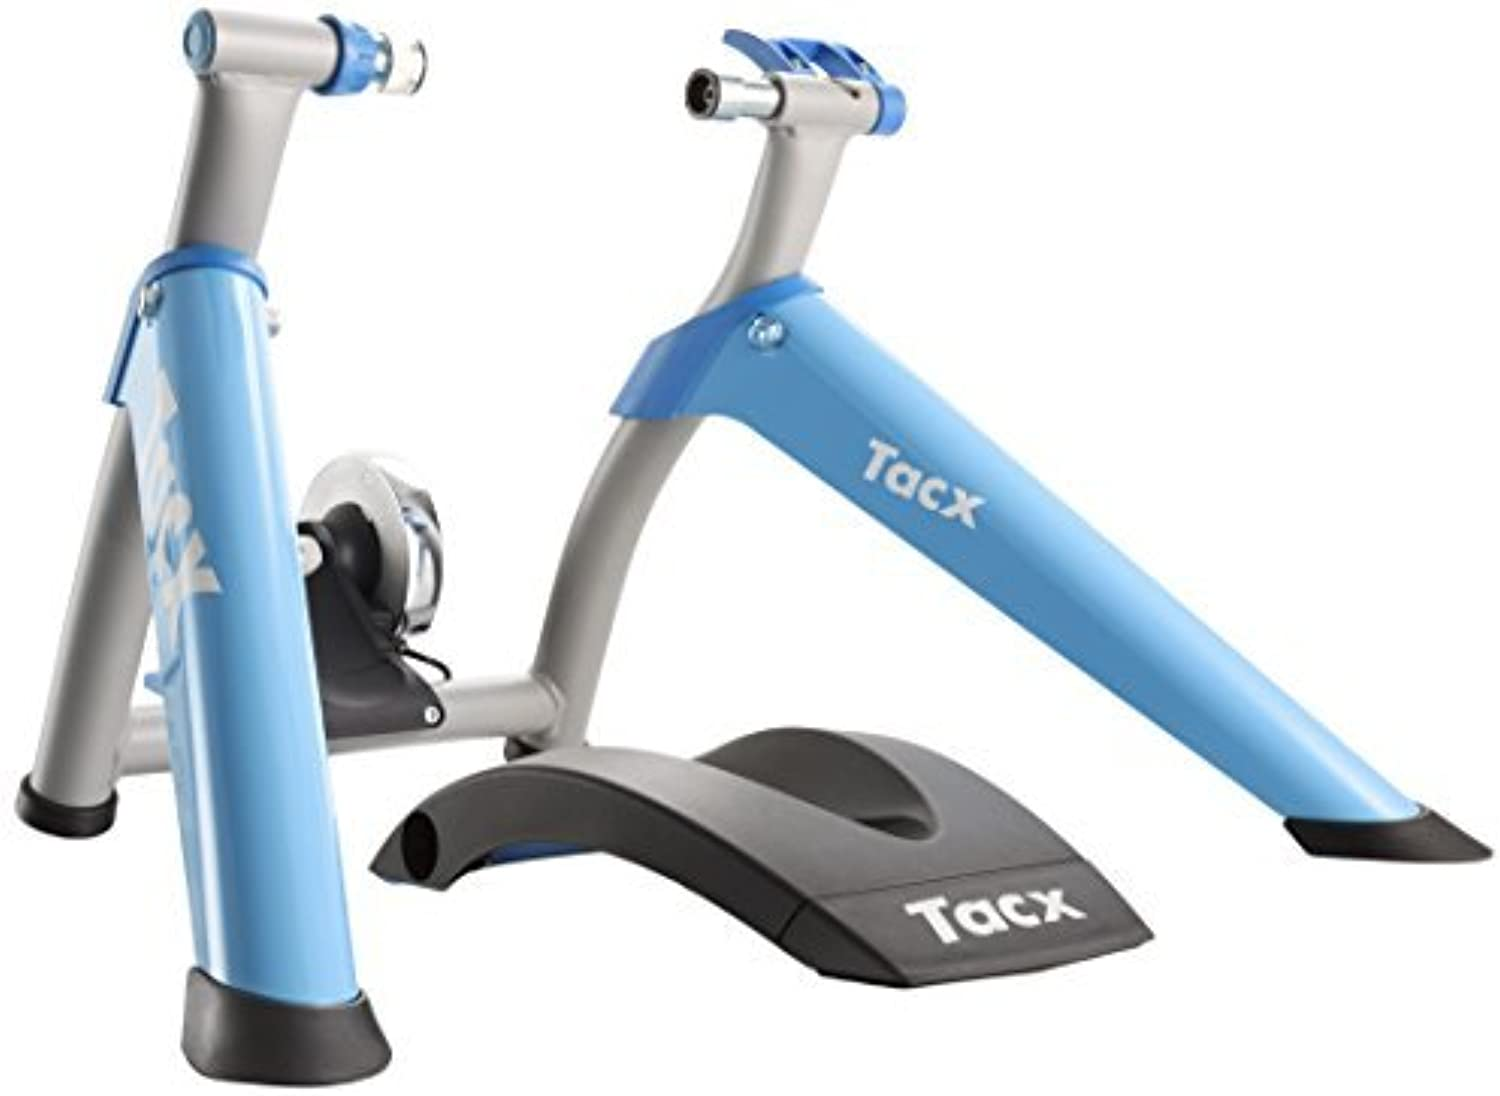 Tacx Satori Smart Interactive Bicycle Trainer  T2400 by Tacx